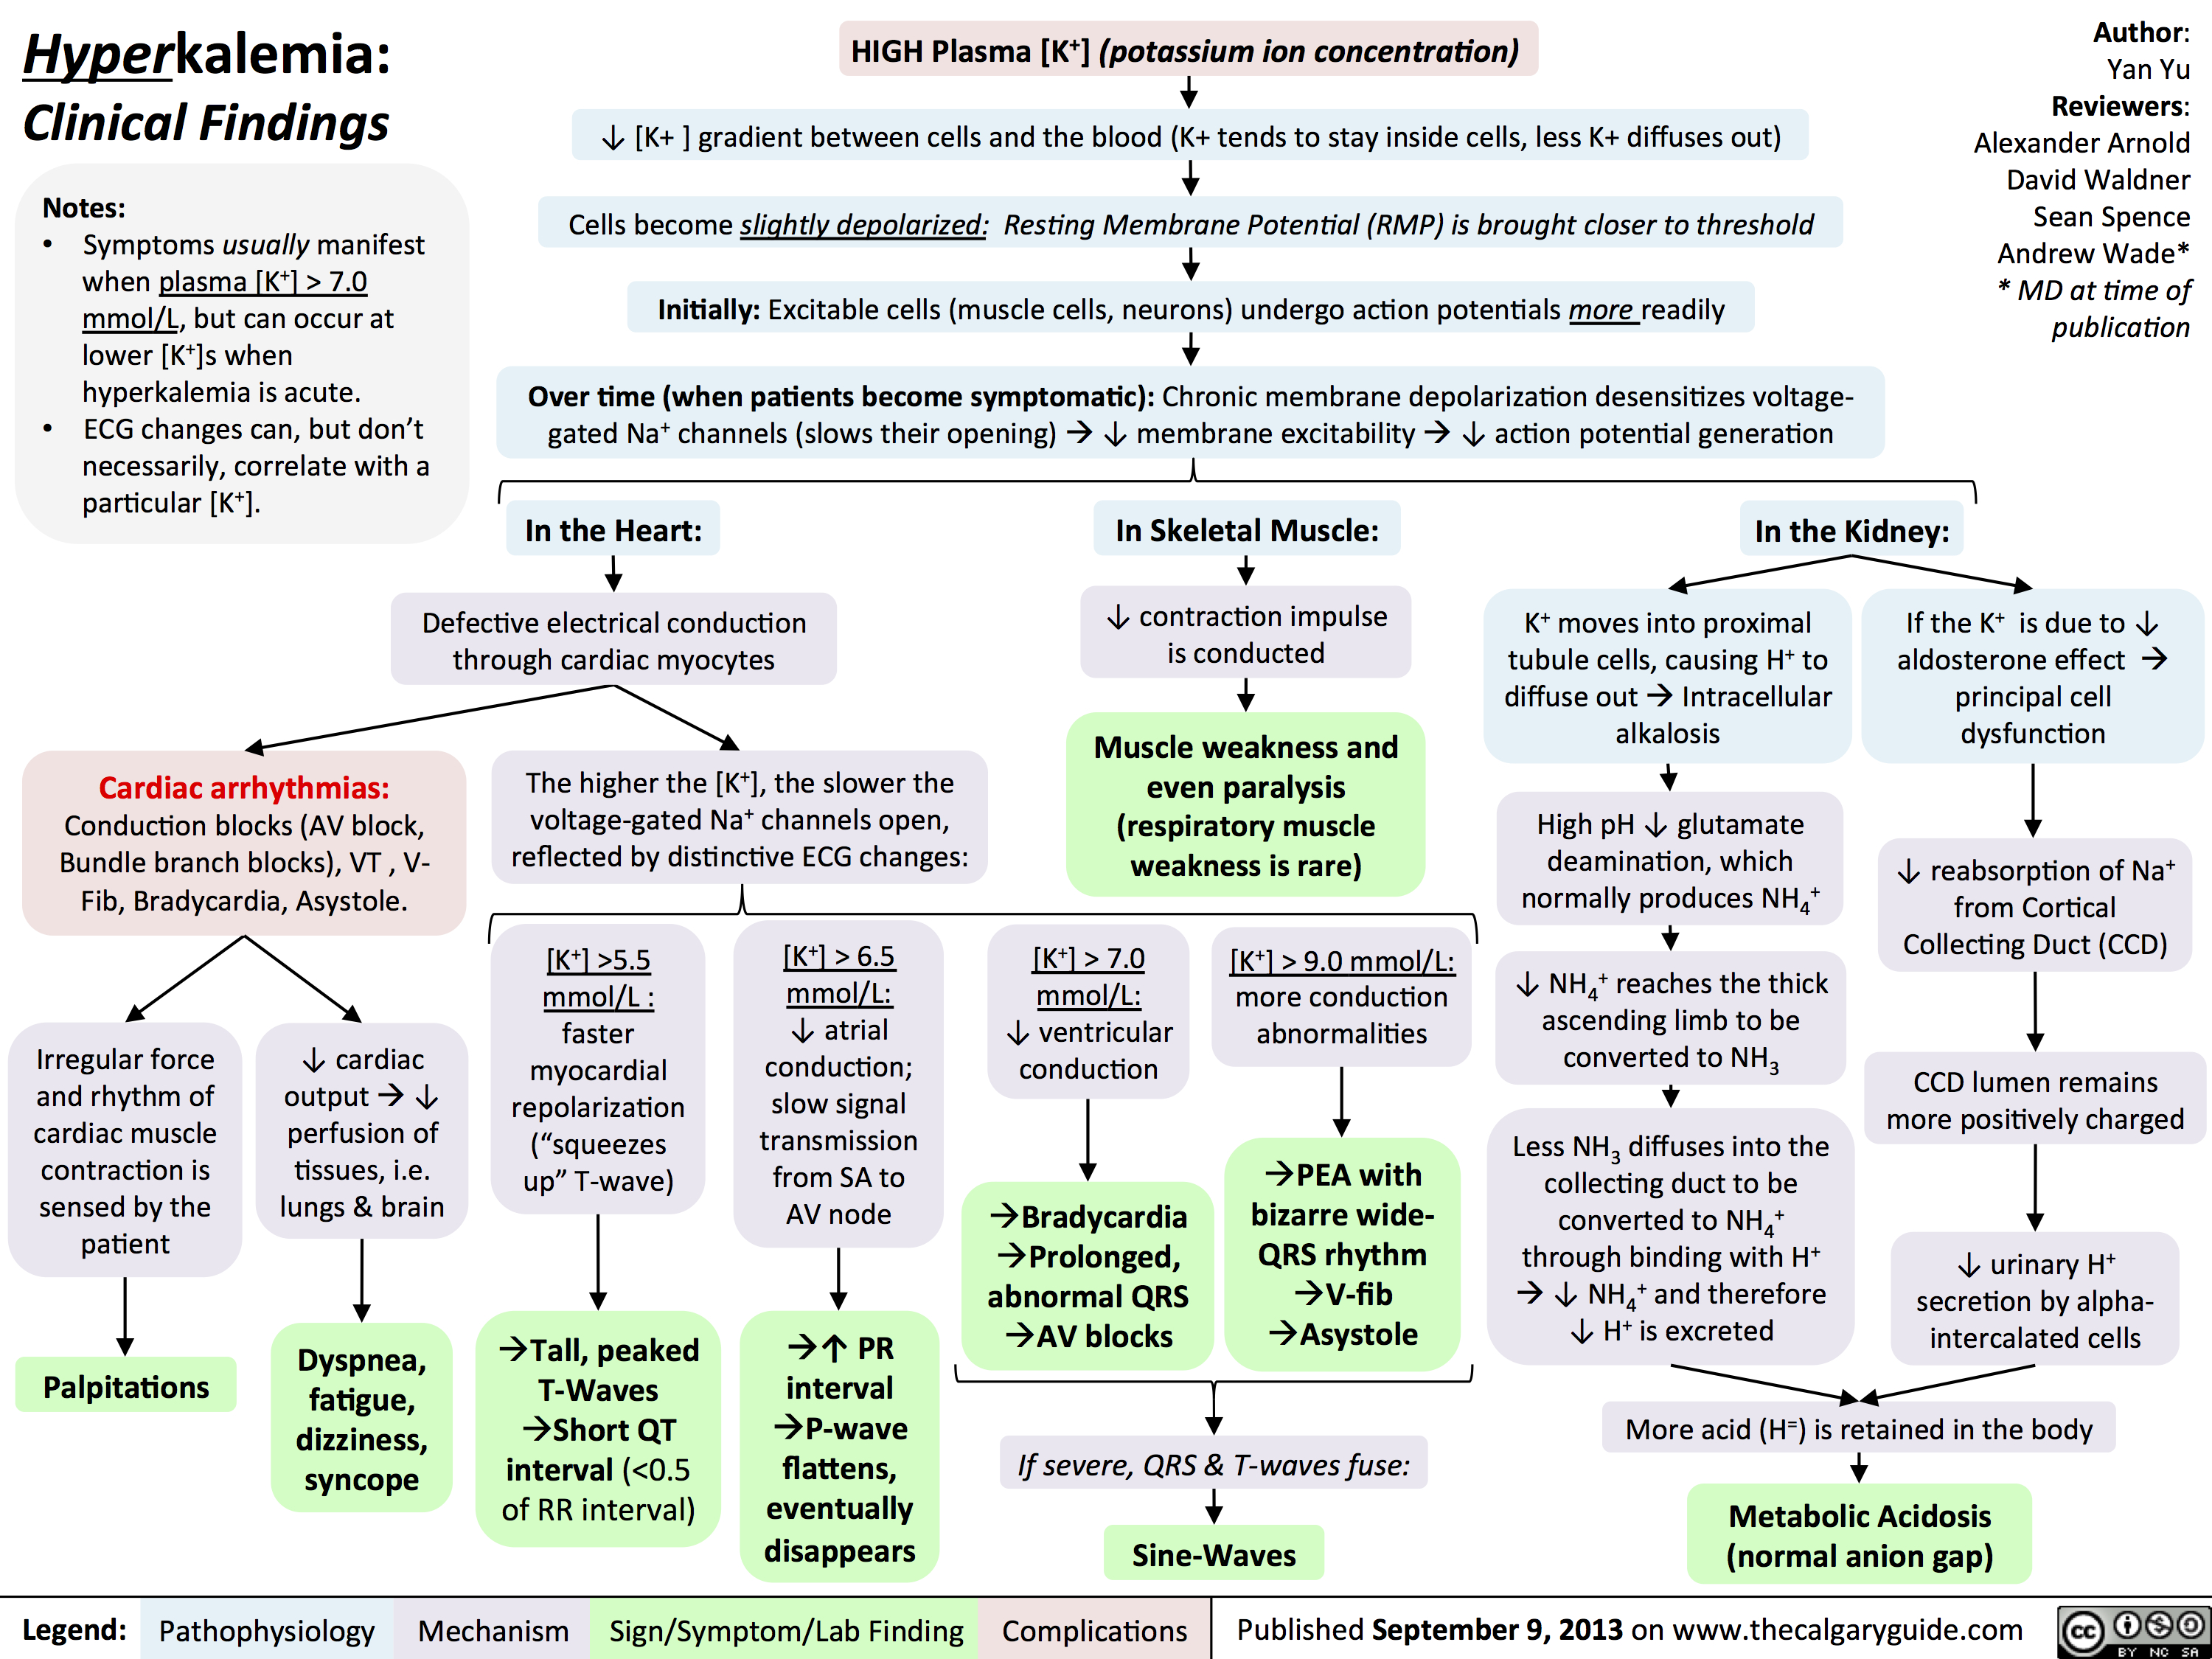 Hyperkalemia: Clinical Findings